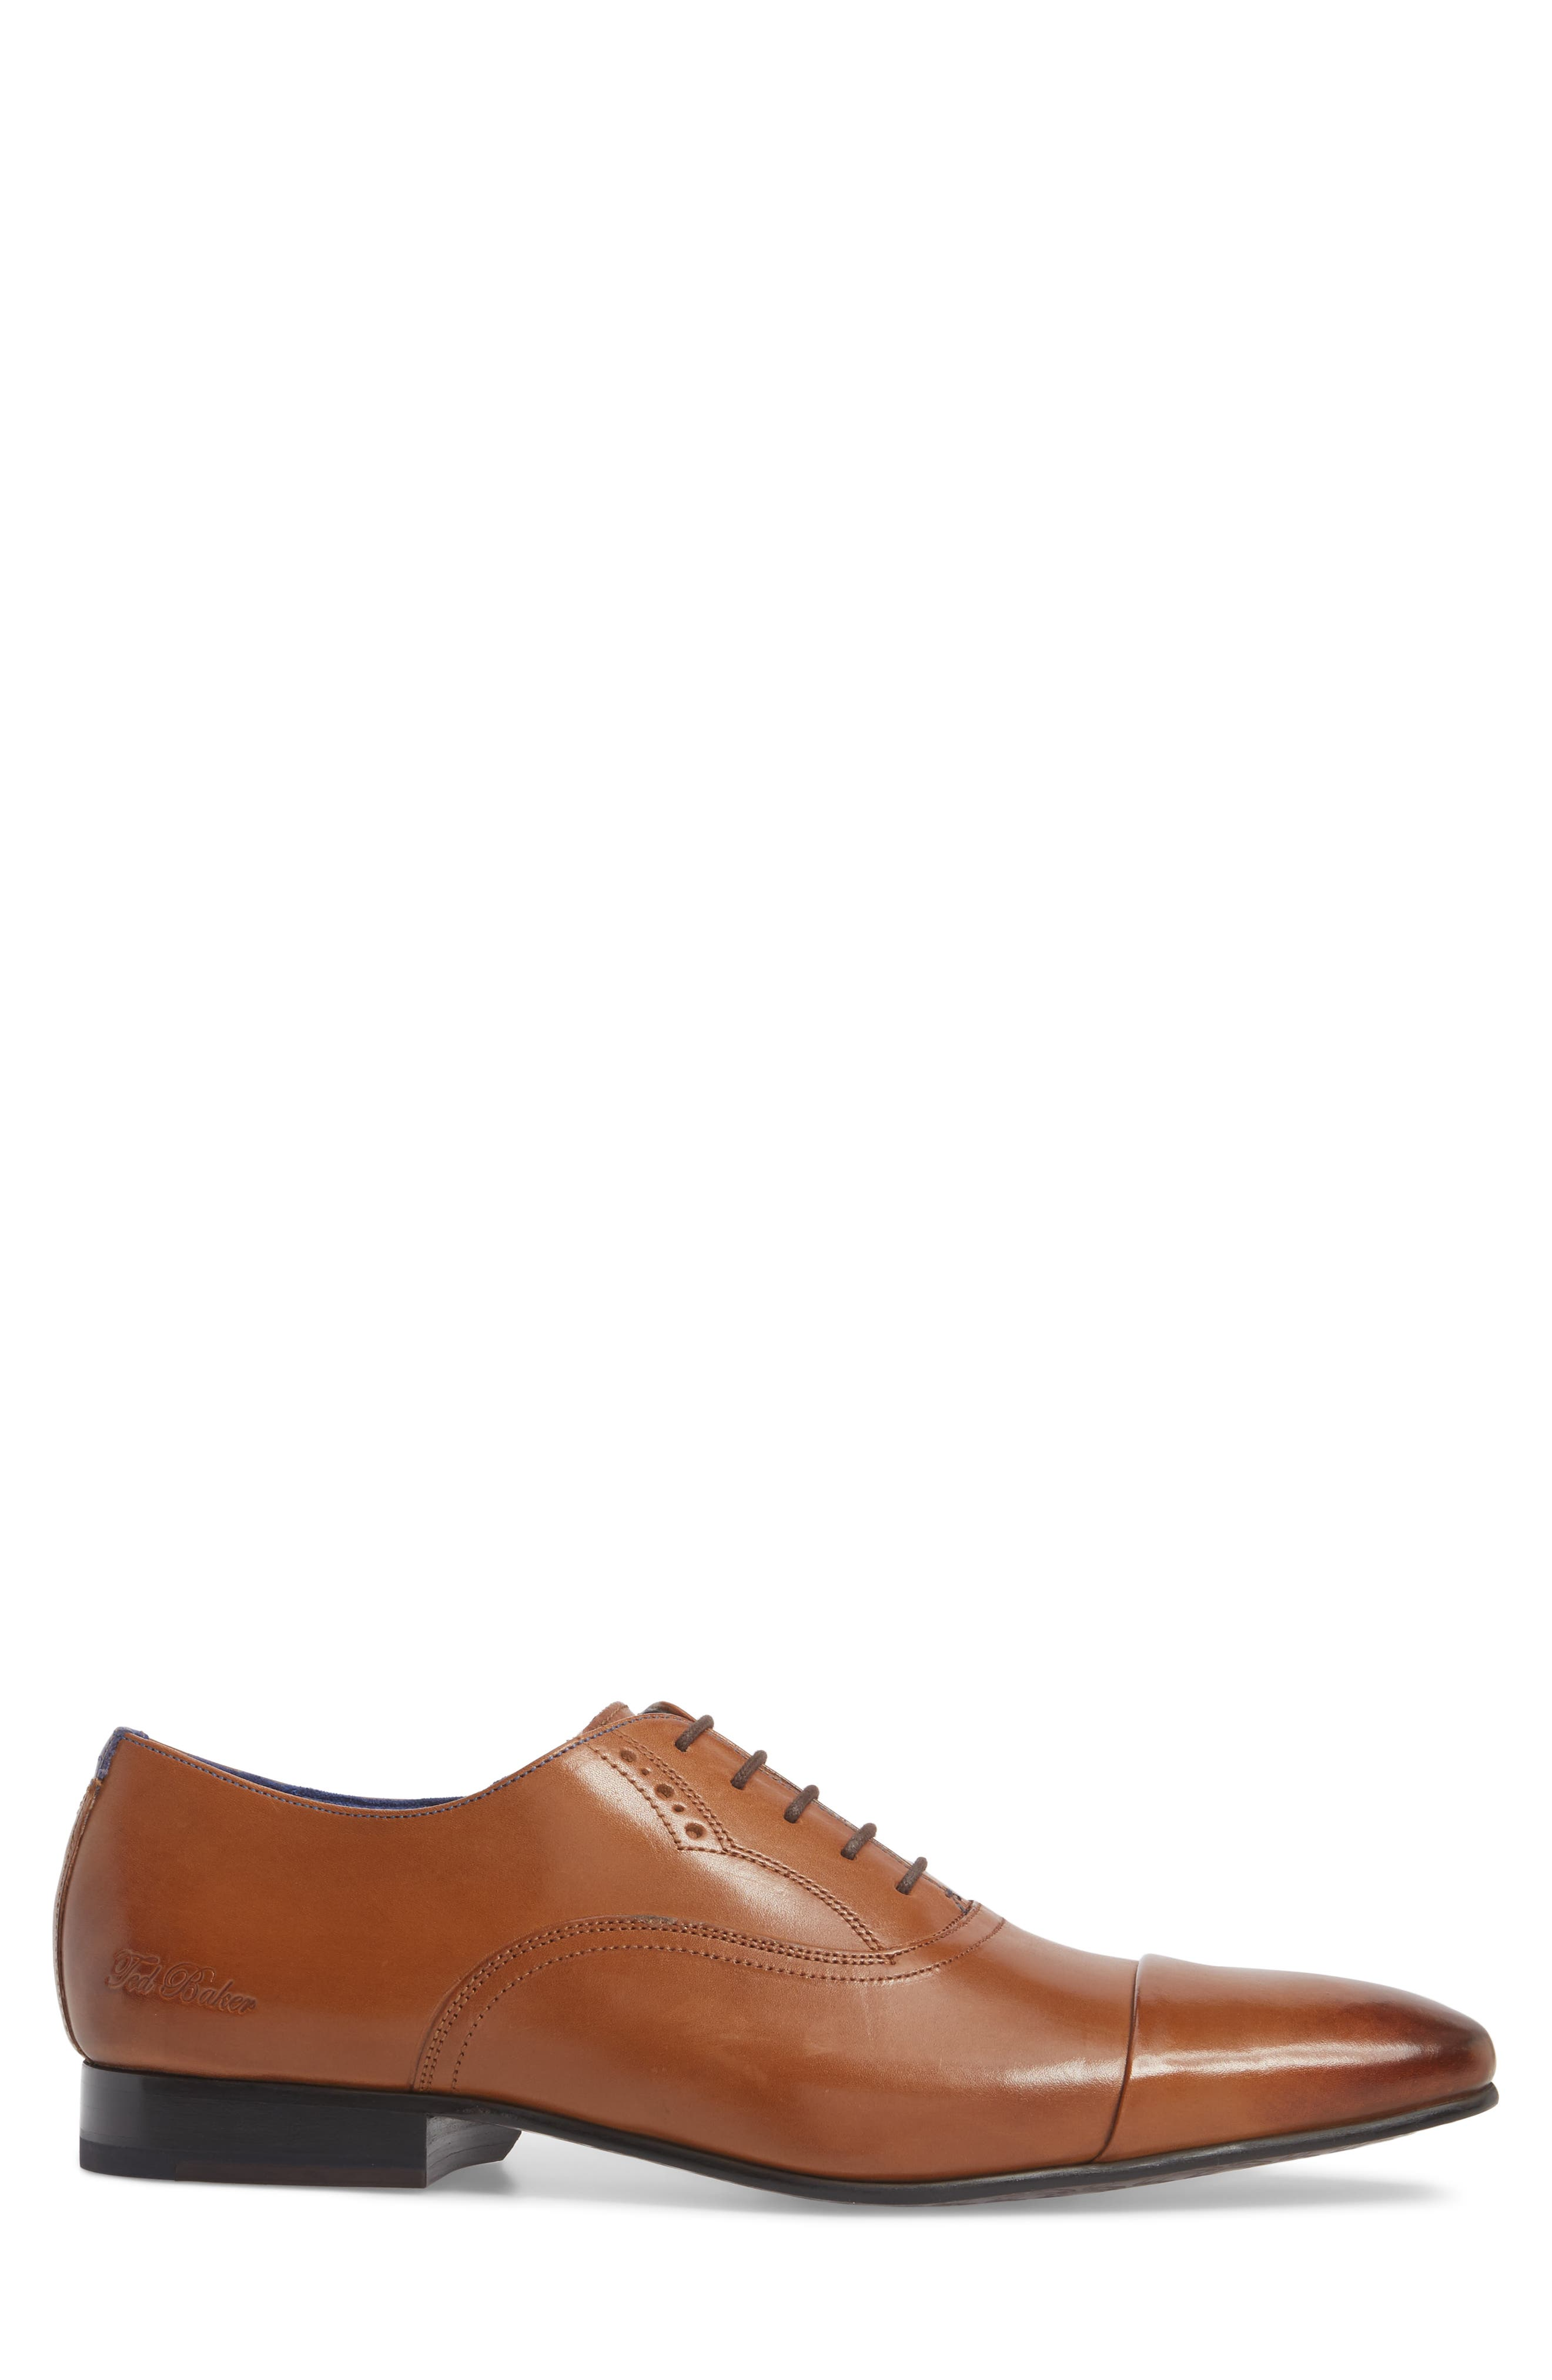 Murain Cap Toe Oxford,                             Alternate thumbnail 8, color,